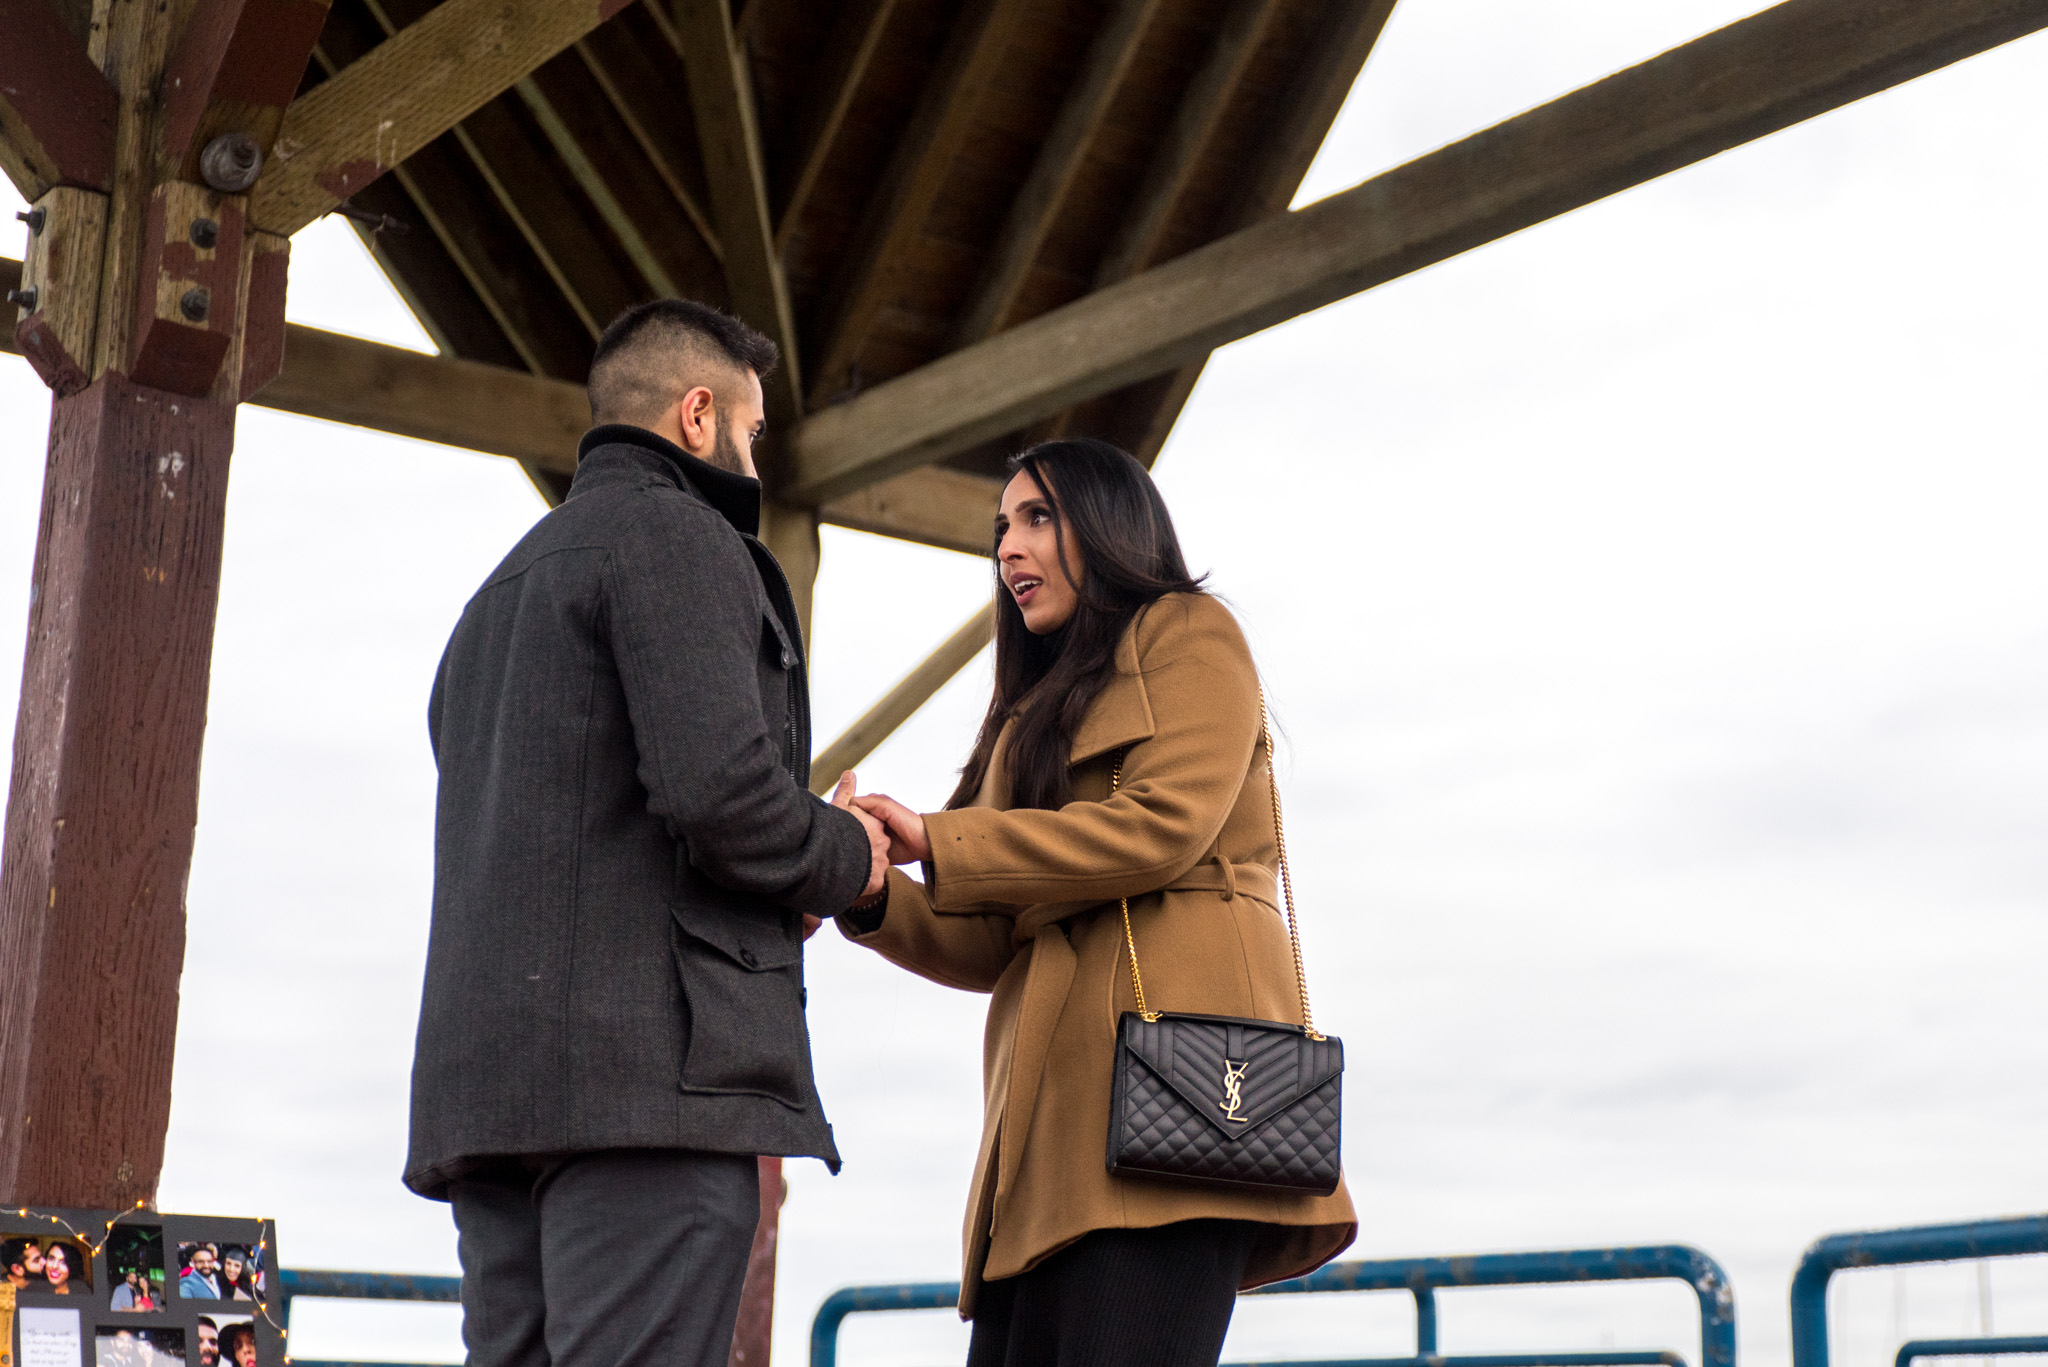 Lonsdale Quay Proposal Photographer-18.JPG